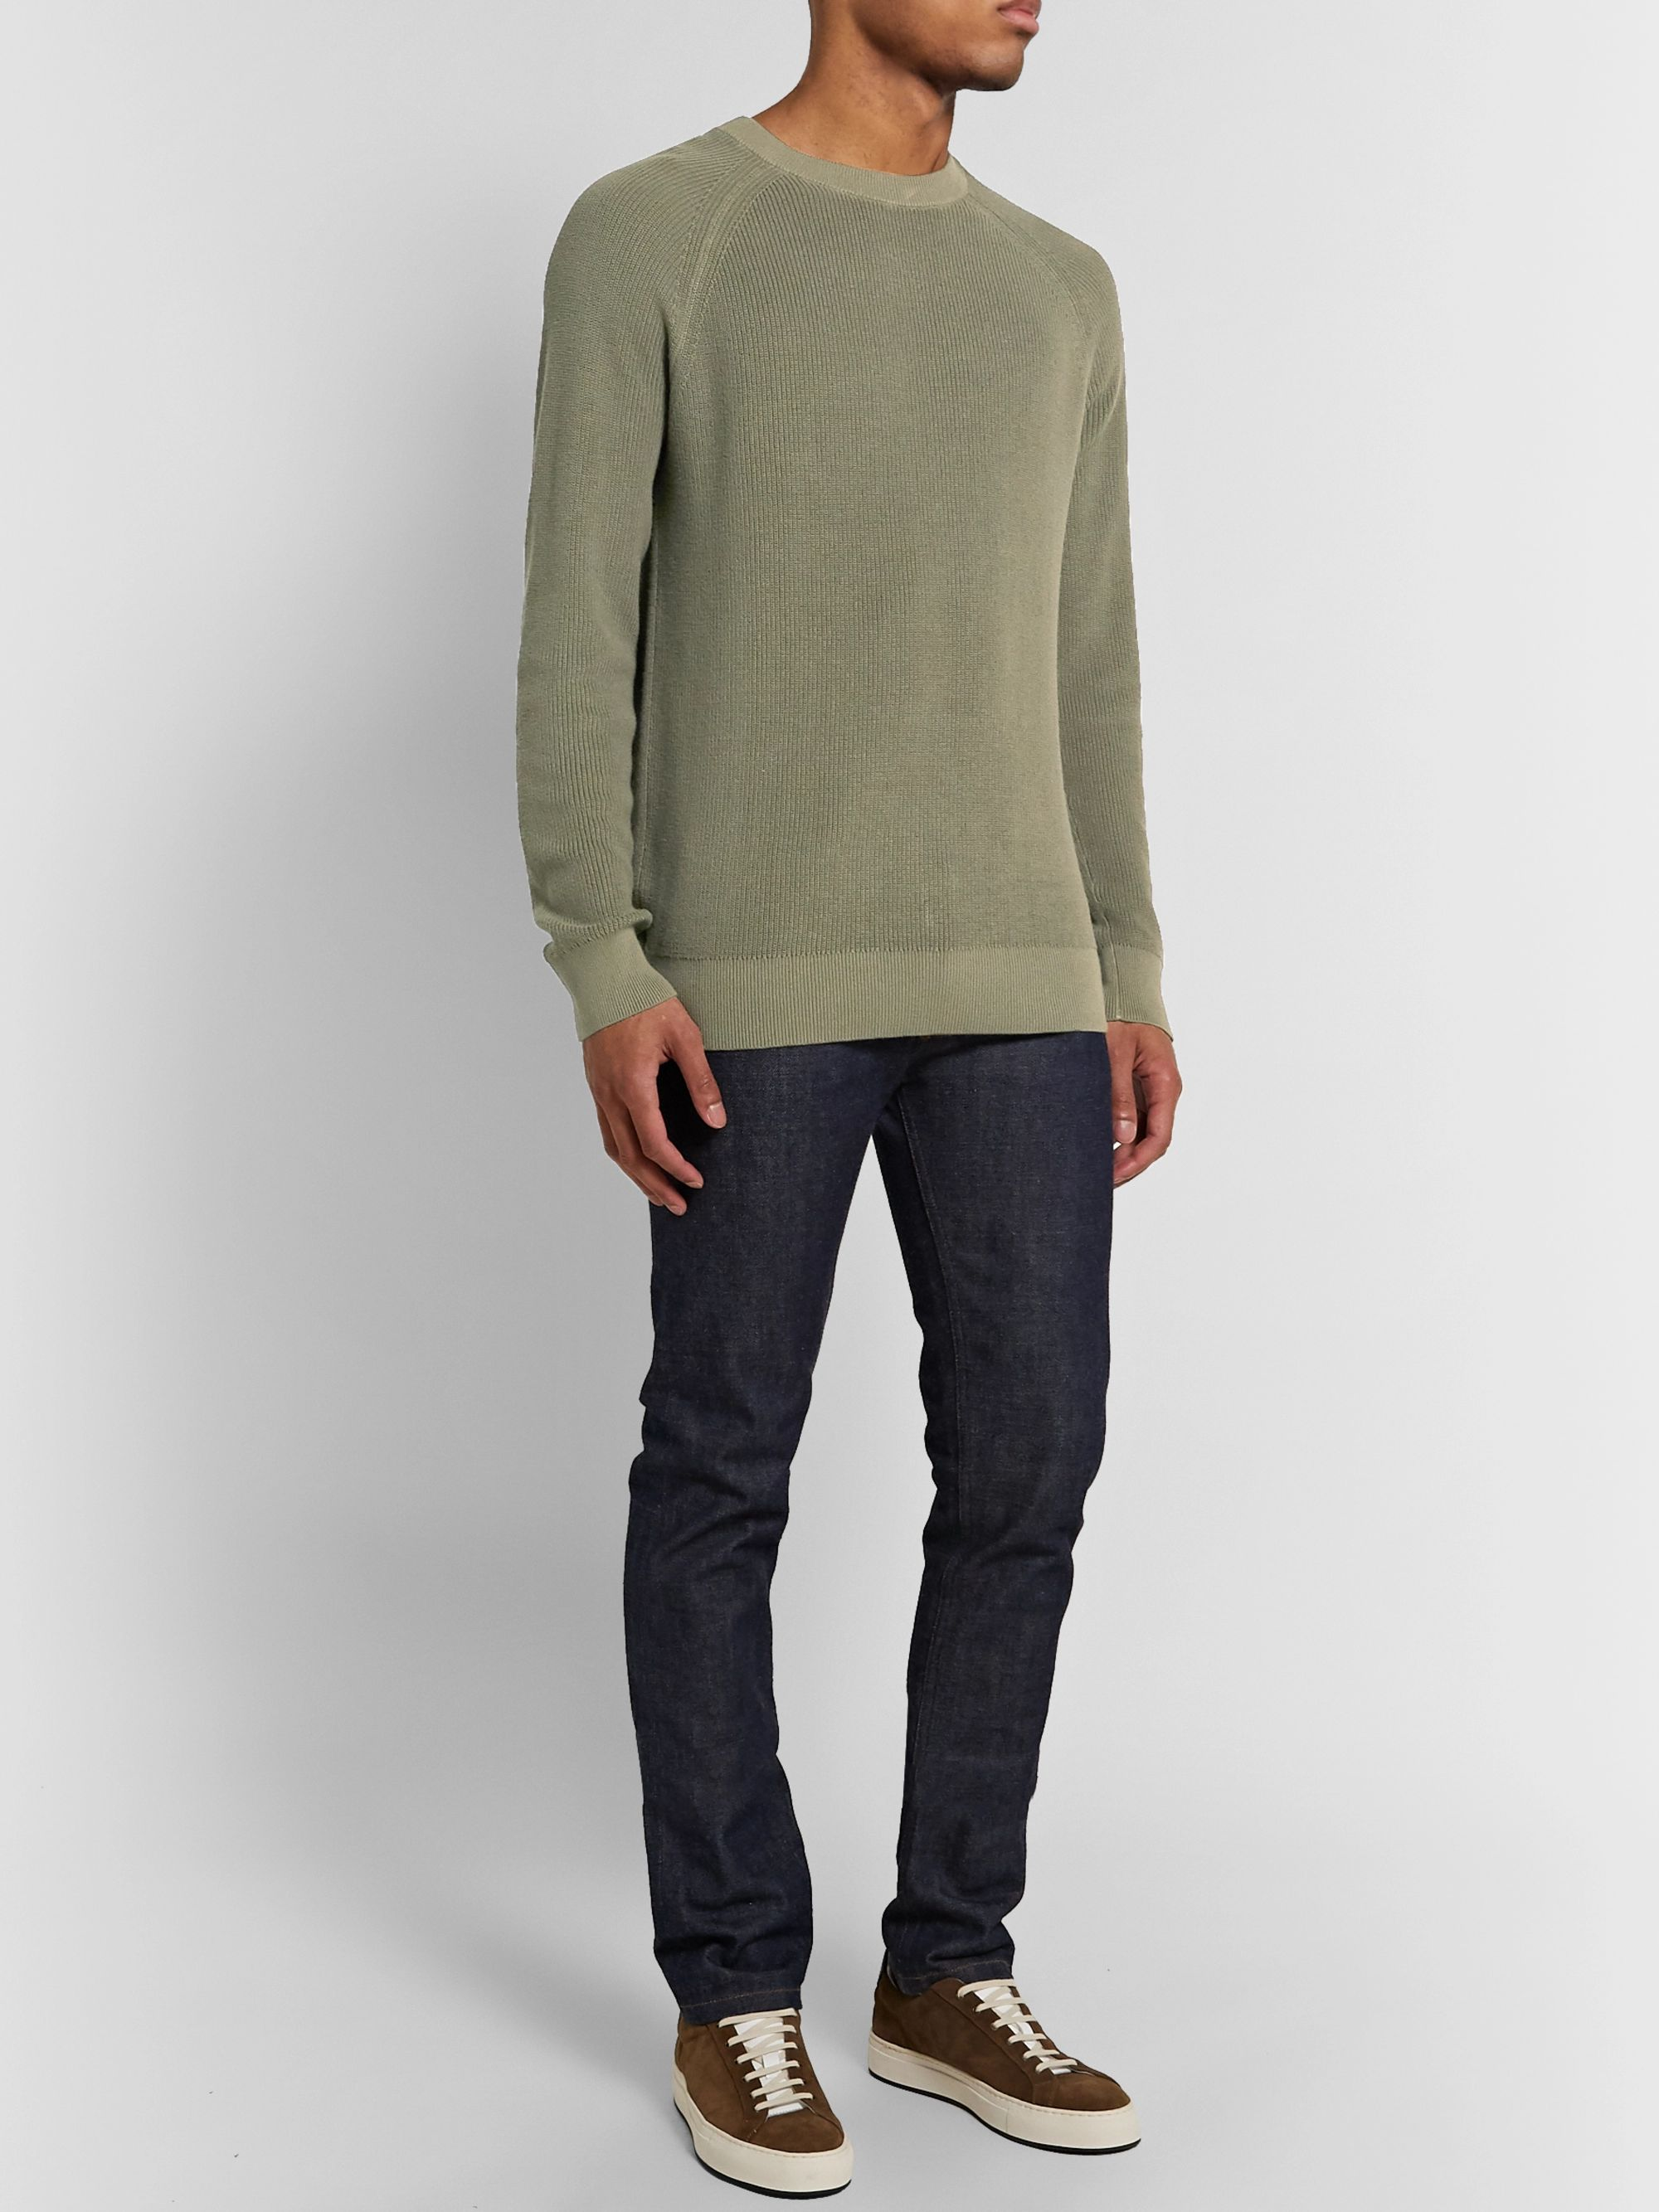 Army Green Garment-dyed Cotton Sweater | Club Monaco